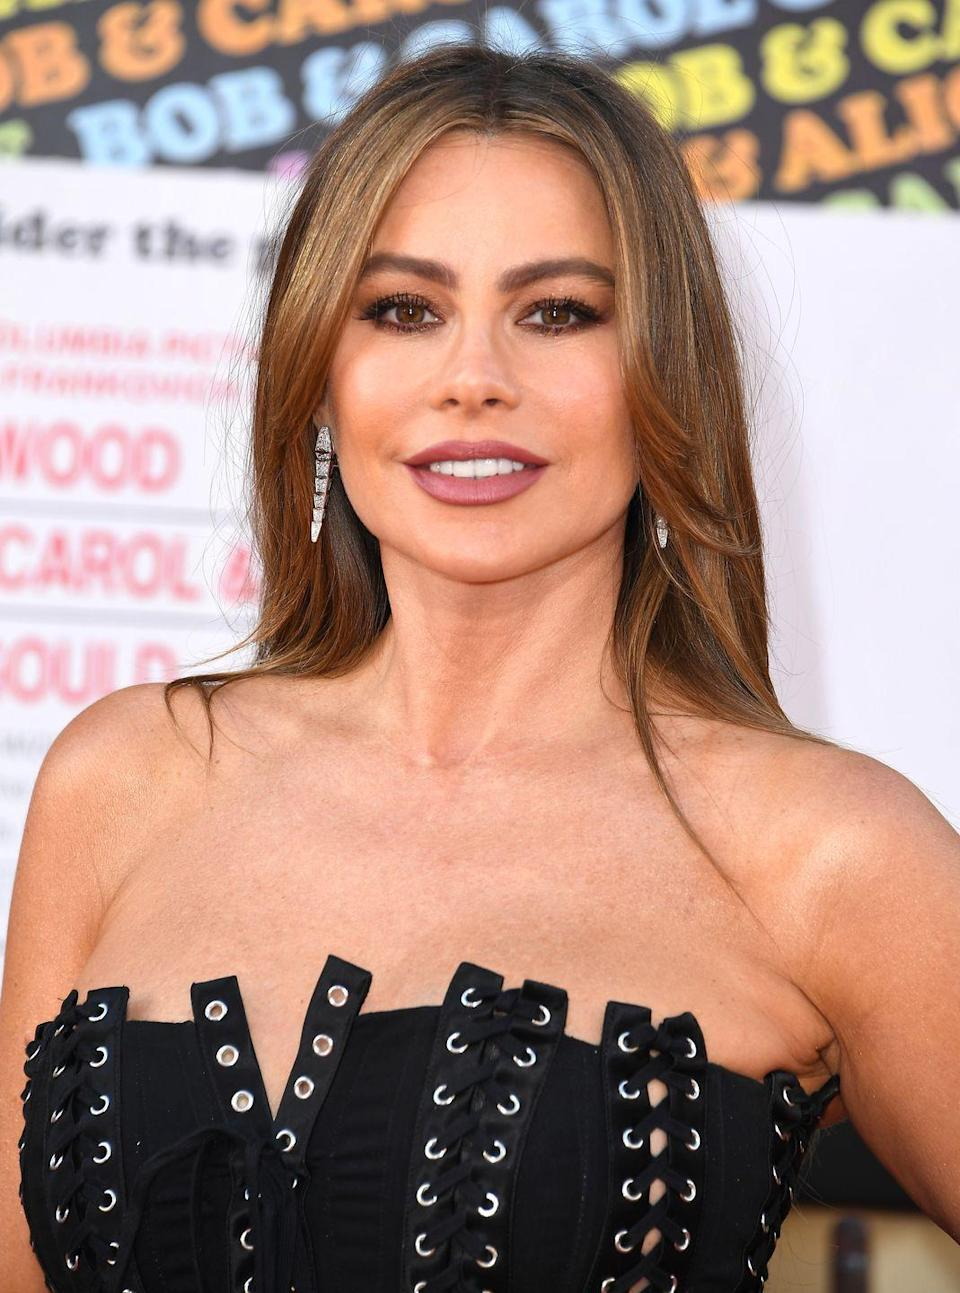 """<p>Sofía was born in Barranquilla, Colombia to her mother, <strong>Margarita Vergara Dávila de Vergara</strong>, and father,<strong> Julio Enrique Vergara Robayo</strong>. In 2015, she became <a href=""""https://www.sandiegouniontribune.com/en-espanol/sdhoy-sofia-vergara-receives-star-on-hollywoods-walk-of-2015may07-story.html"""" rel=""""nofollow noopener"""" target=""""_blank"""" data-ylk=""""slk:the first actress from her country"""" class=""""link rapid-noclick-resp"""">the first actress from her country</a> to have her name on the Hollywood Walk of Fame. Sofía earned widespread recognition for her role playing Gloria in the popular ABC comedy series <em>Modern Family</em>. She also rose to prominence acting in <em>Chasing Pap</em><em>i</em>, <em>Meet the Browns</em> and <em>Madea Goes to Jail</em>. </p>"""